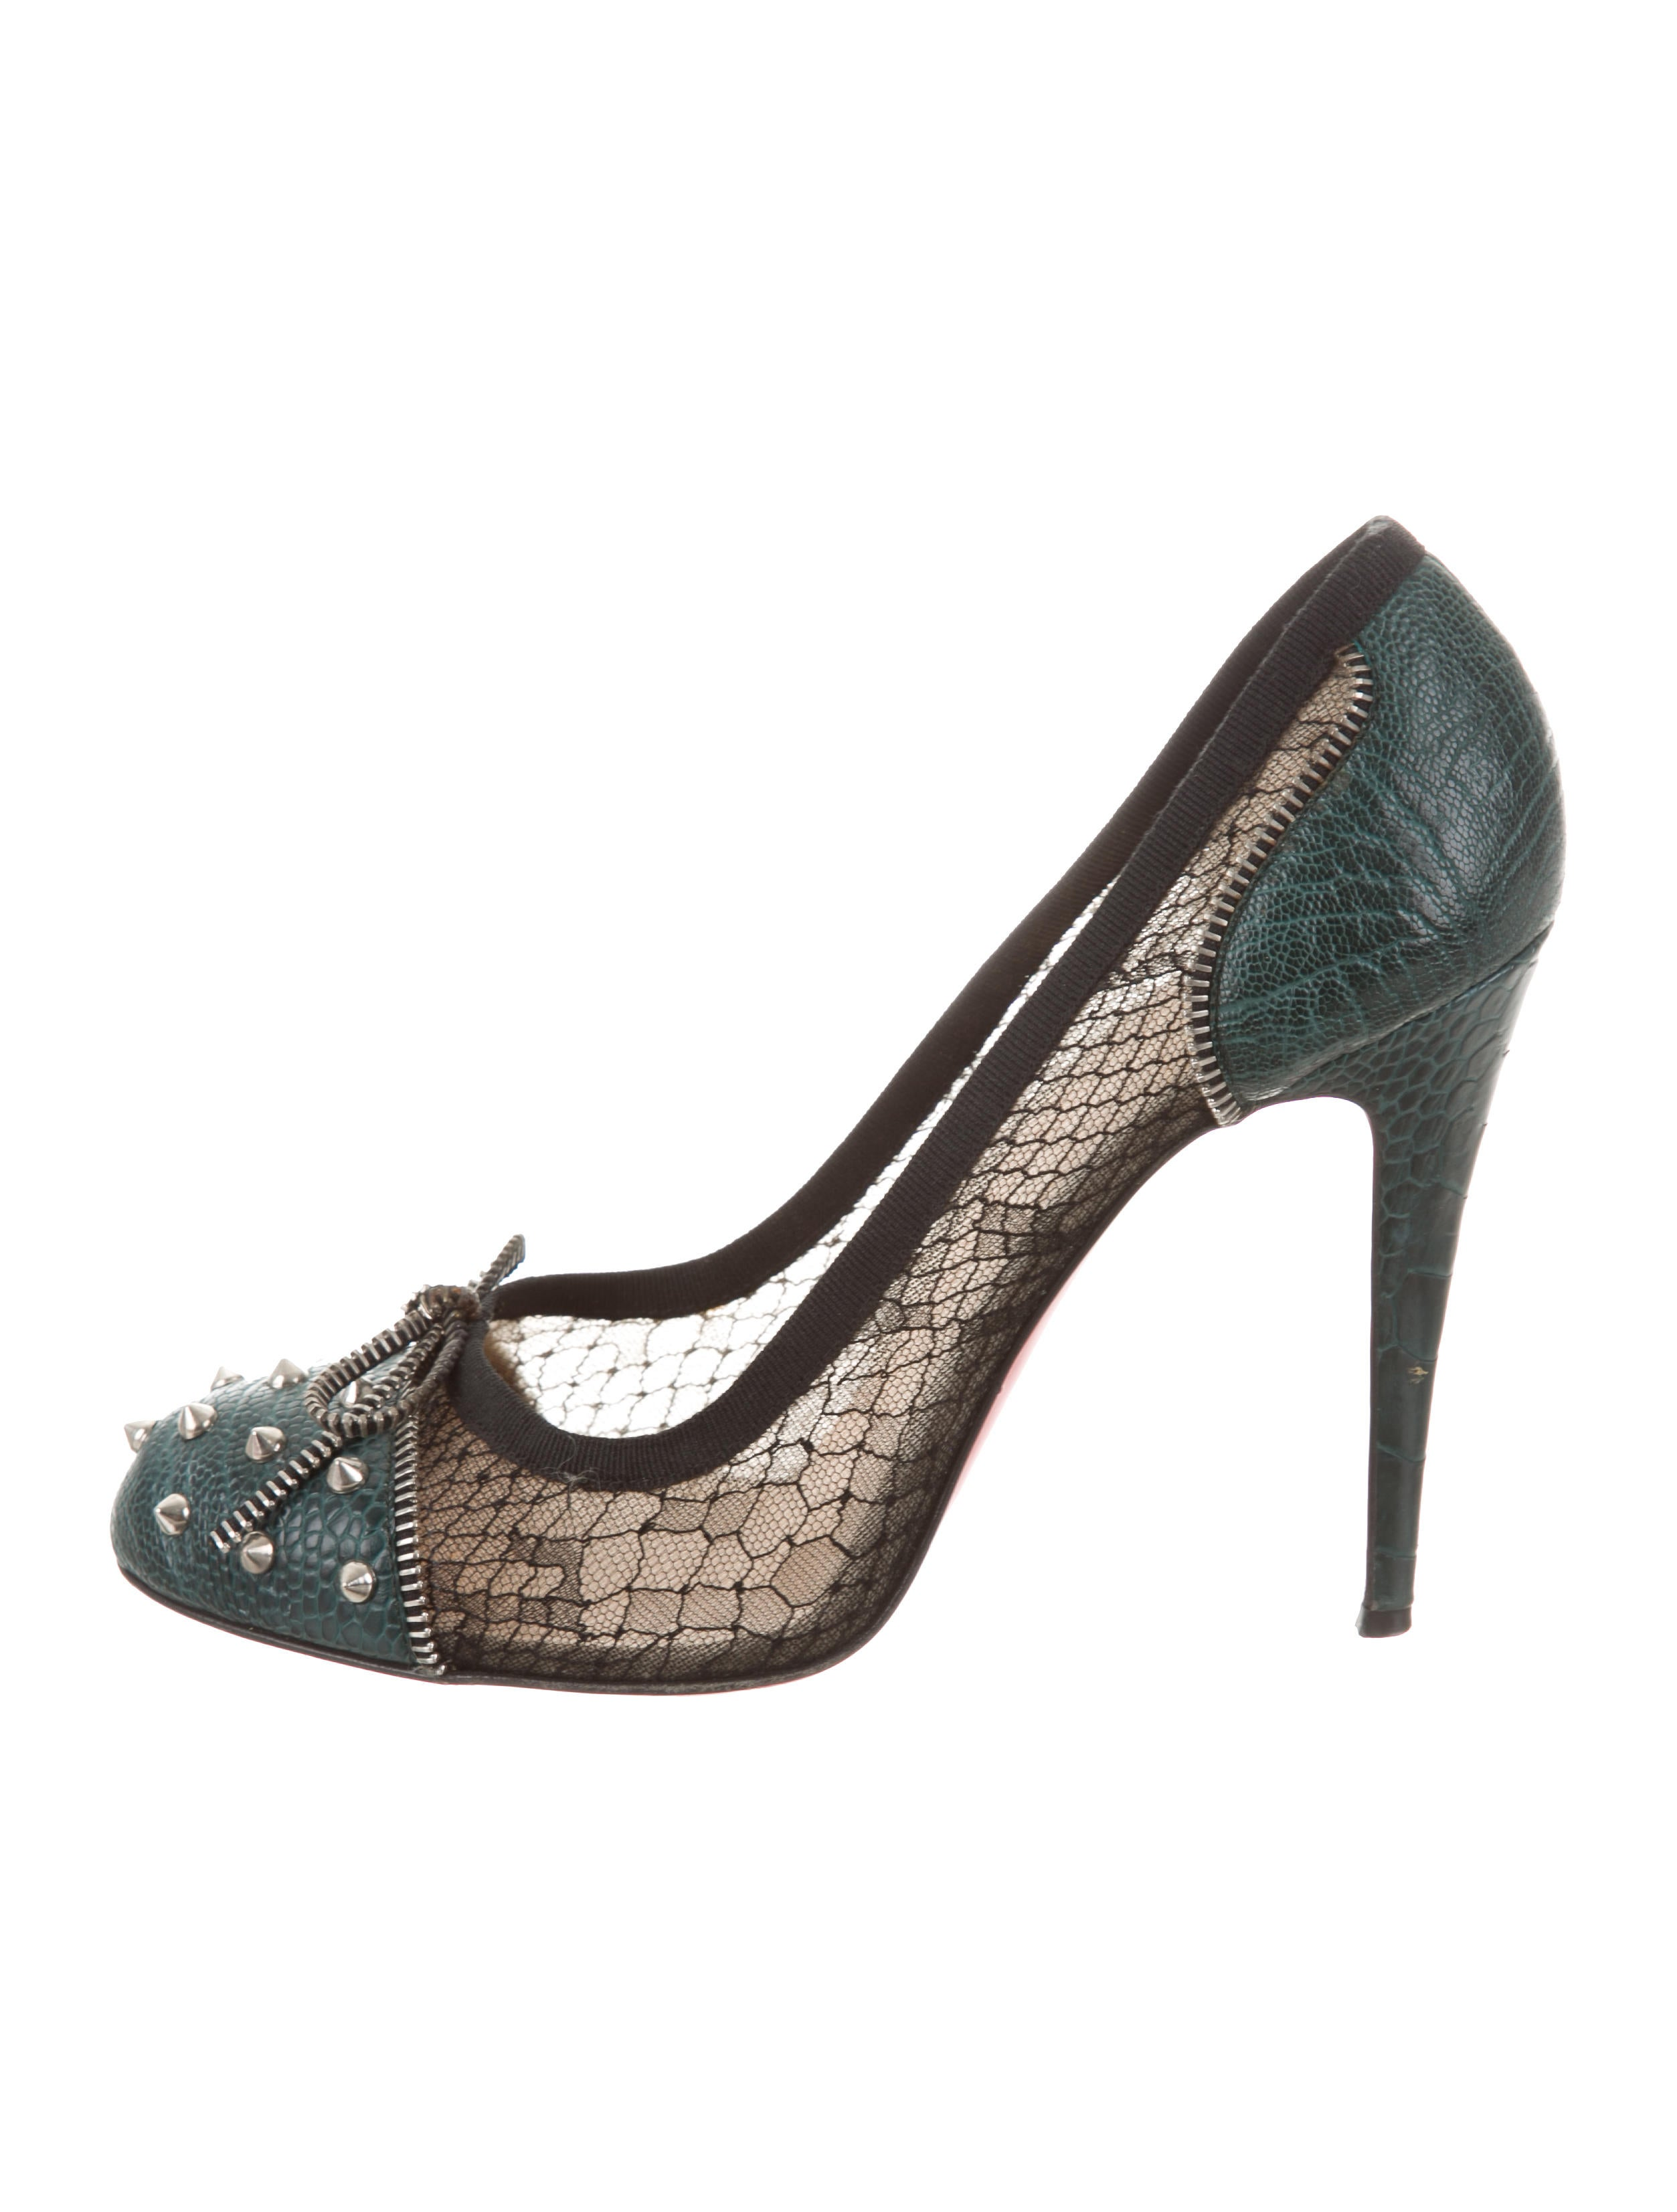 cheap sale new outlet visa payment Christian Louboutin Candy Lace Embellished Pumps bCNv6VXe